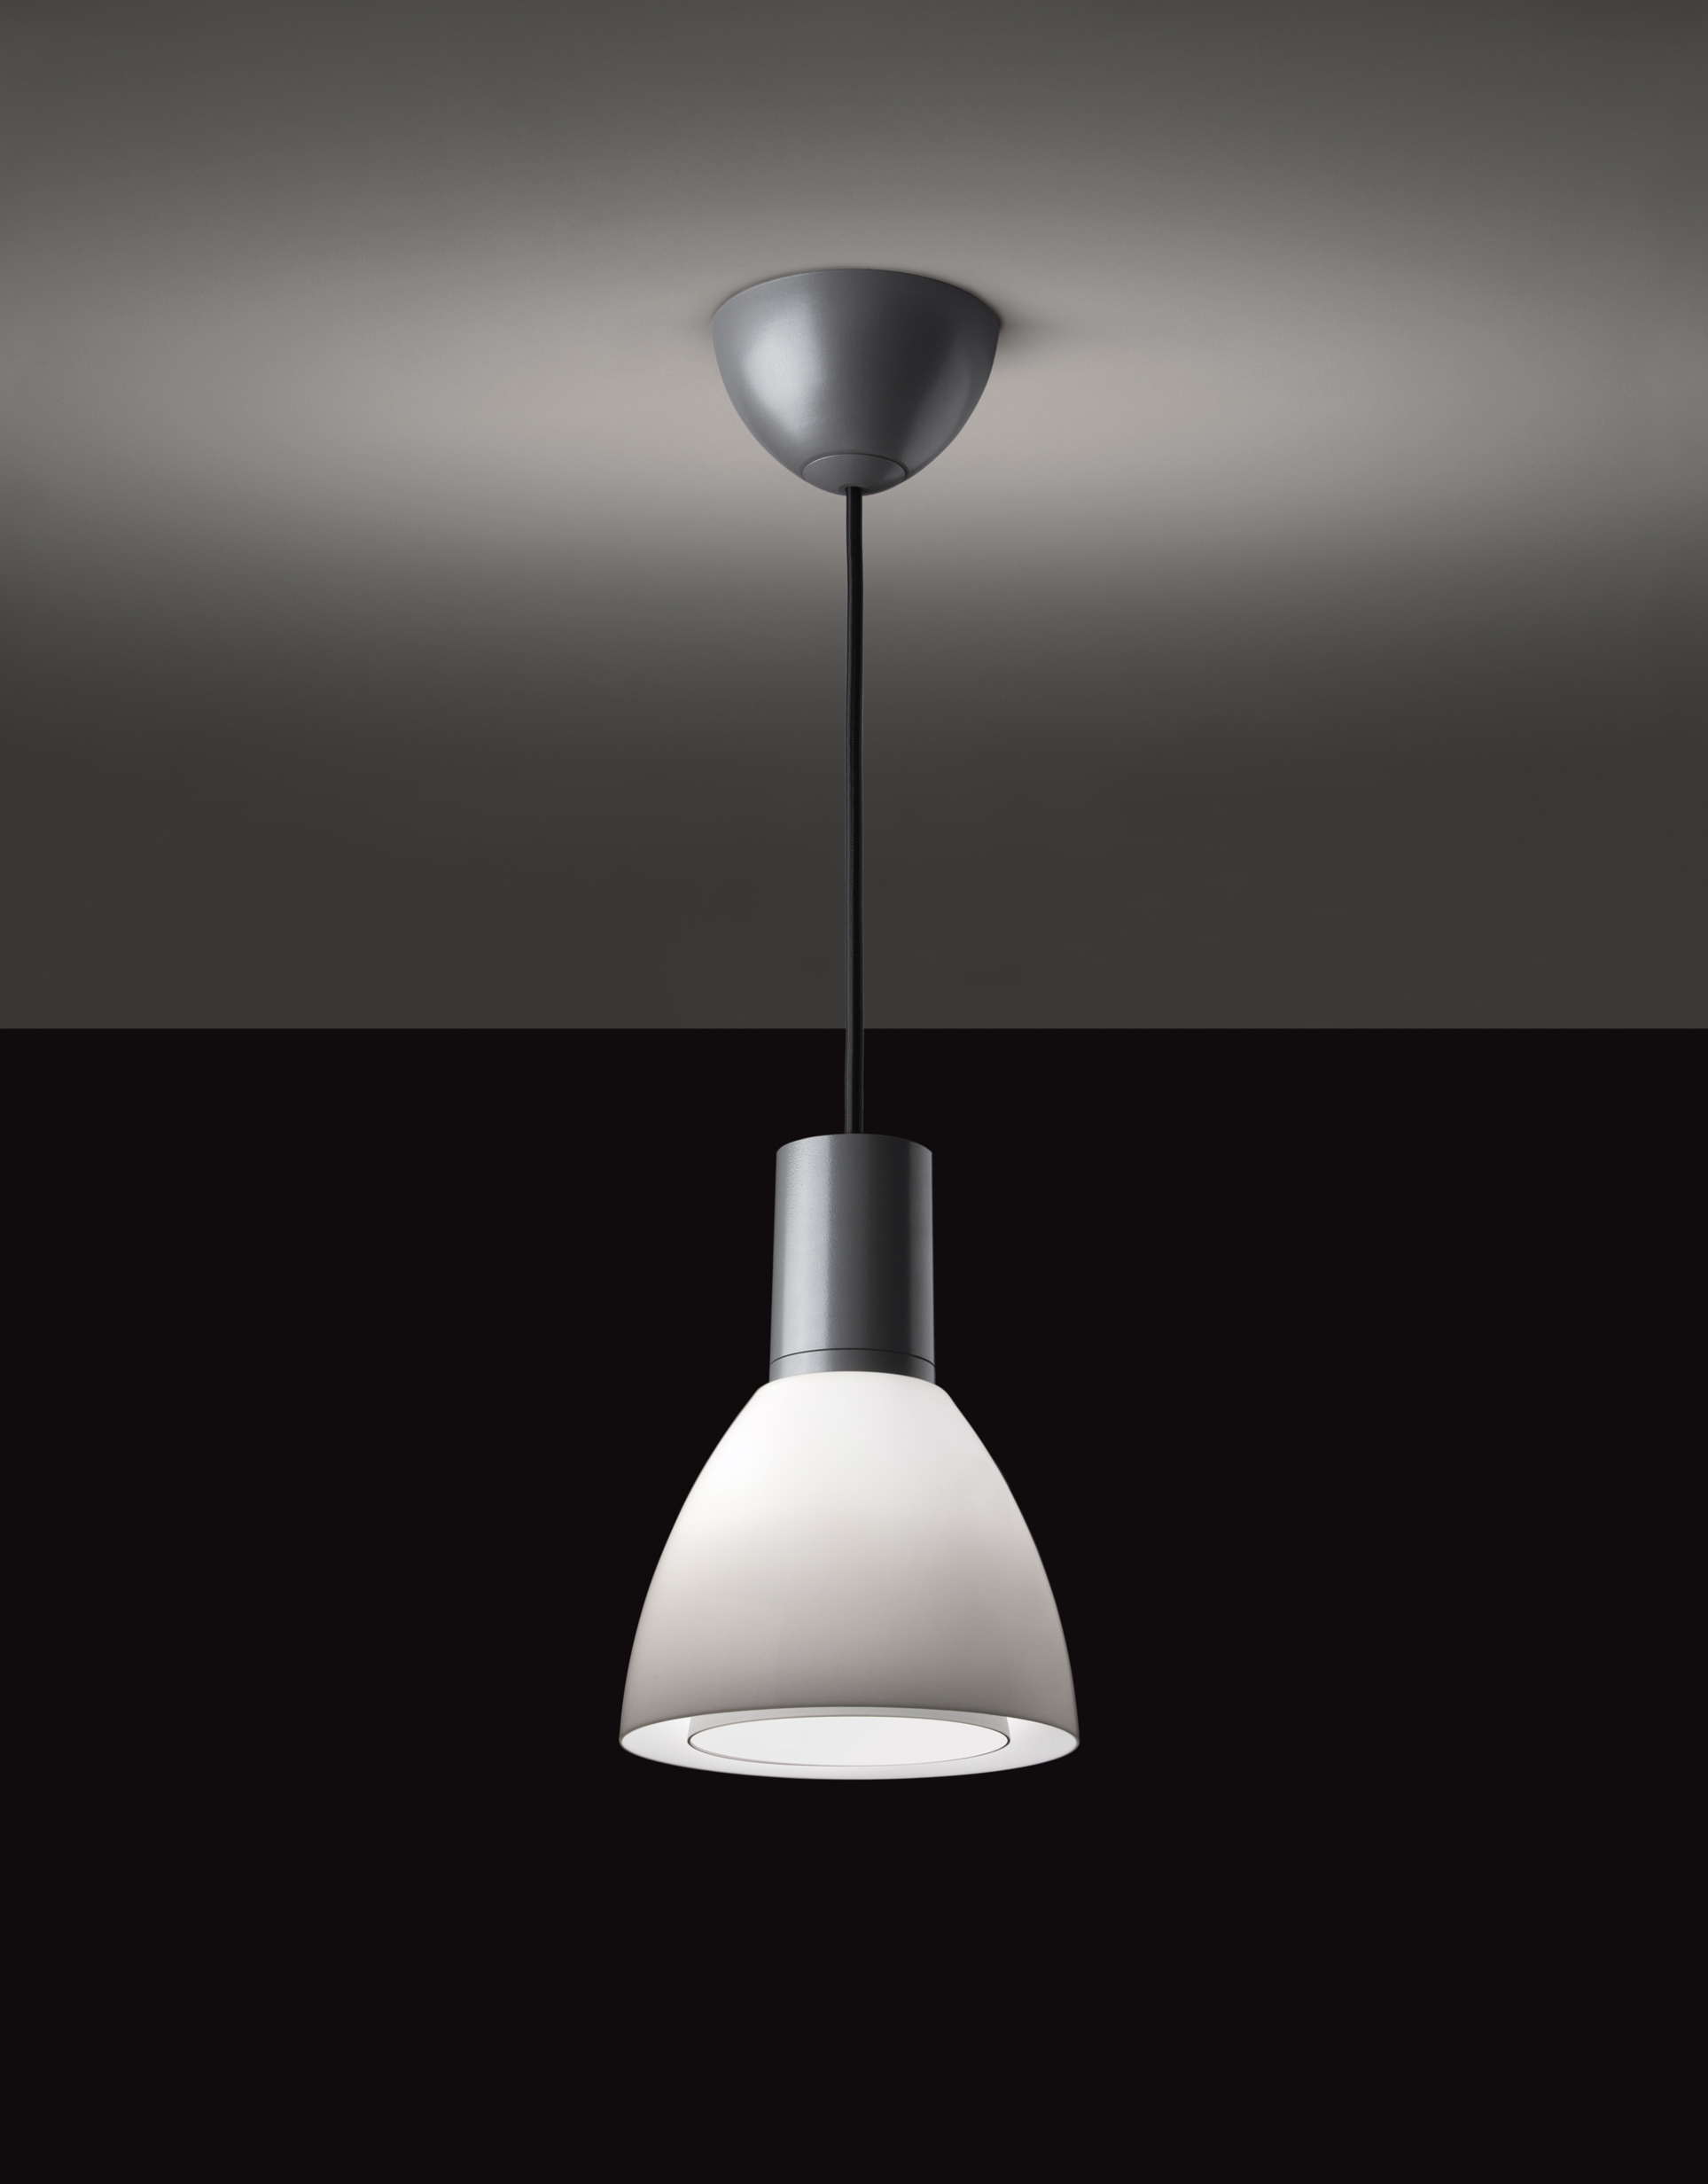 ocl lighting rep. levo pendant ocl · le1-p1cc-10-gw-grp ocl lighting rep